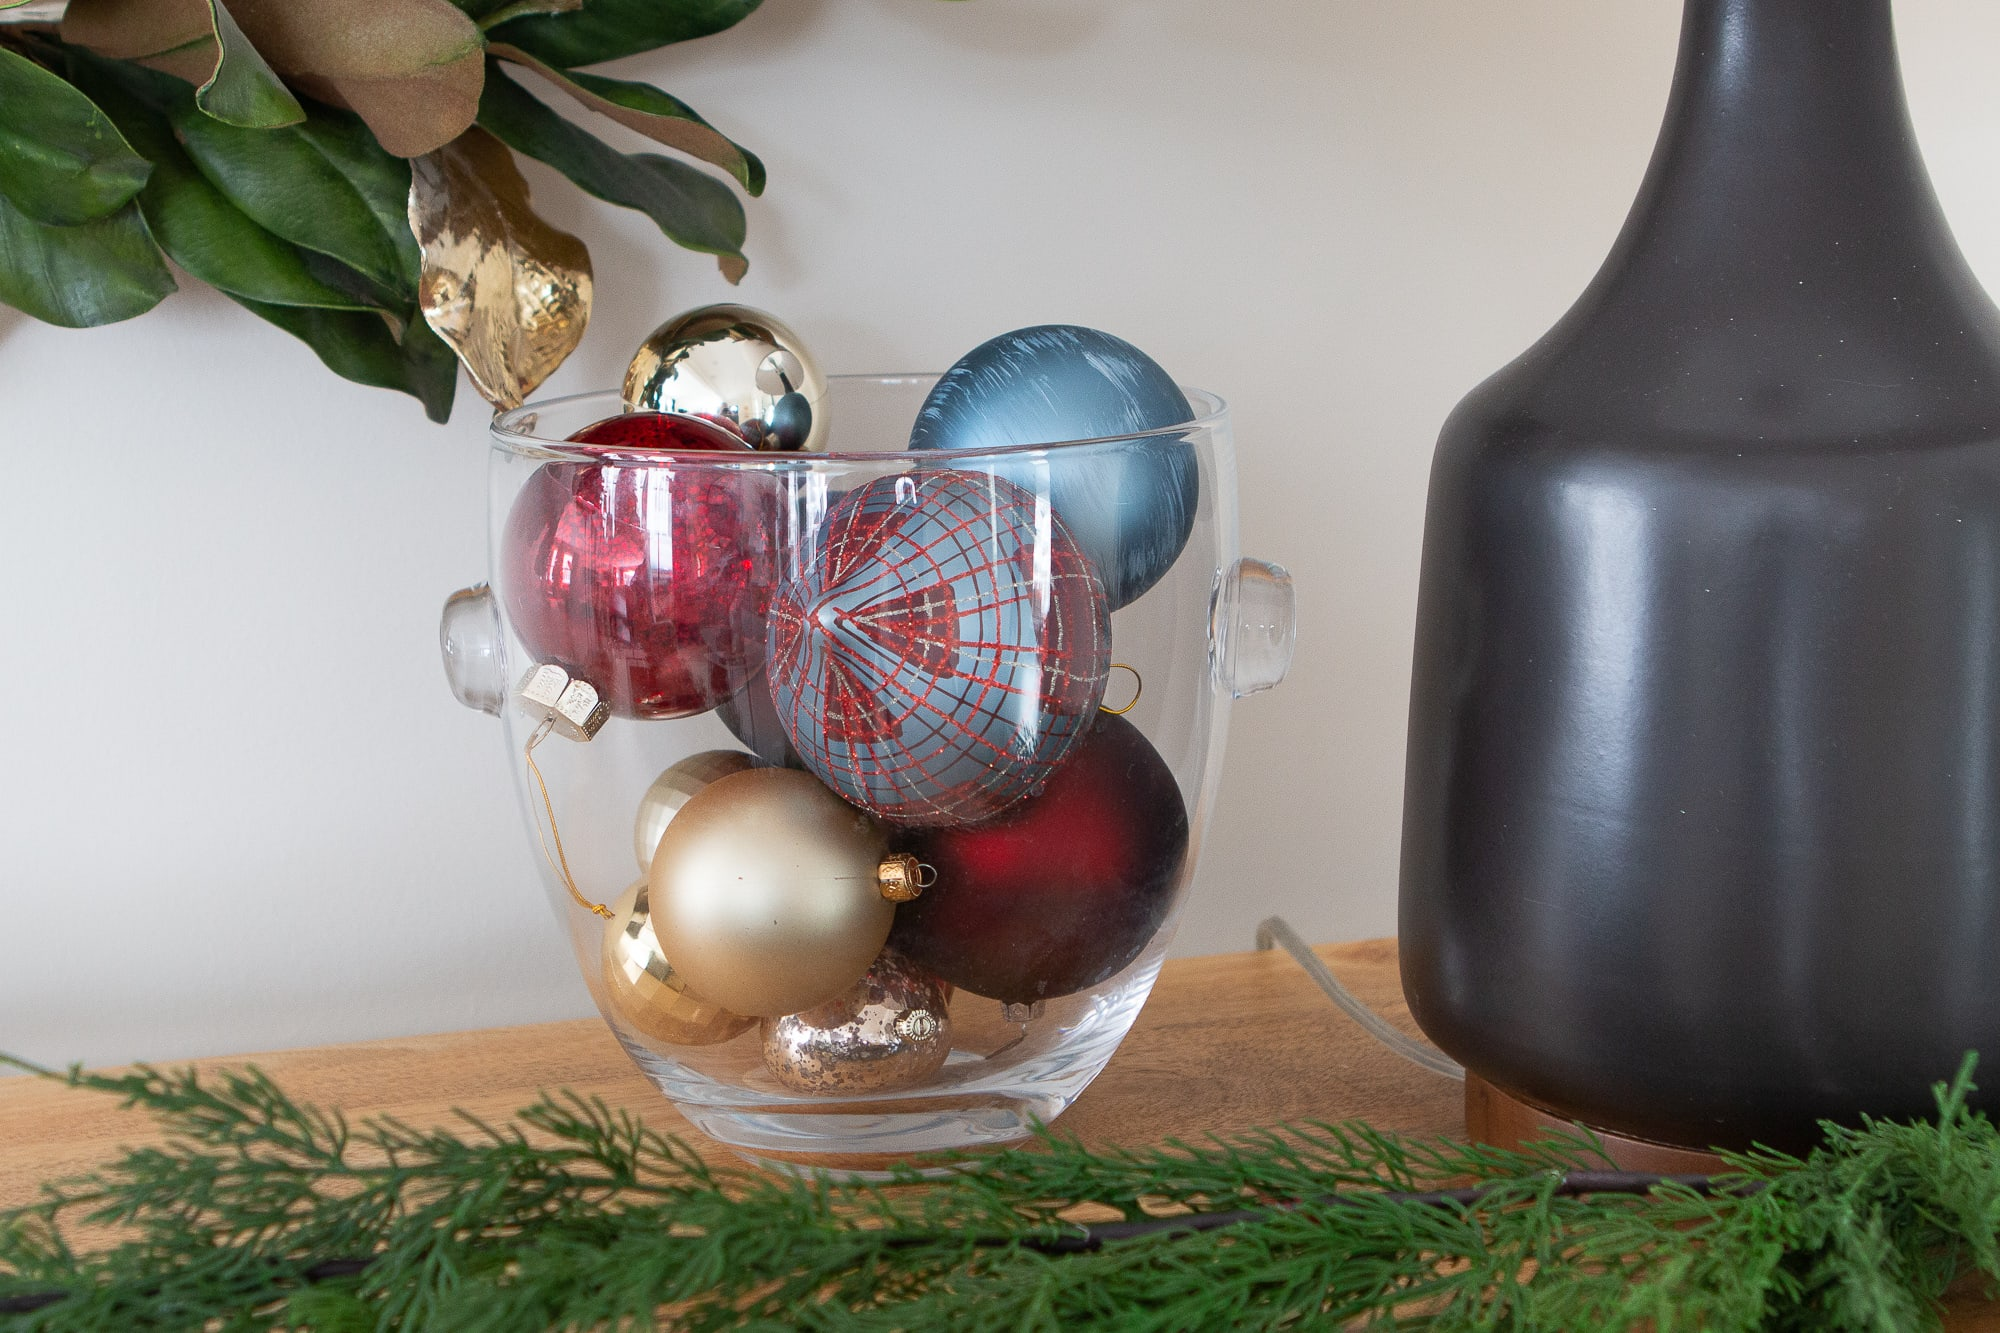 Fill a bowl with ornaments in your holiday entry